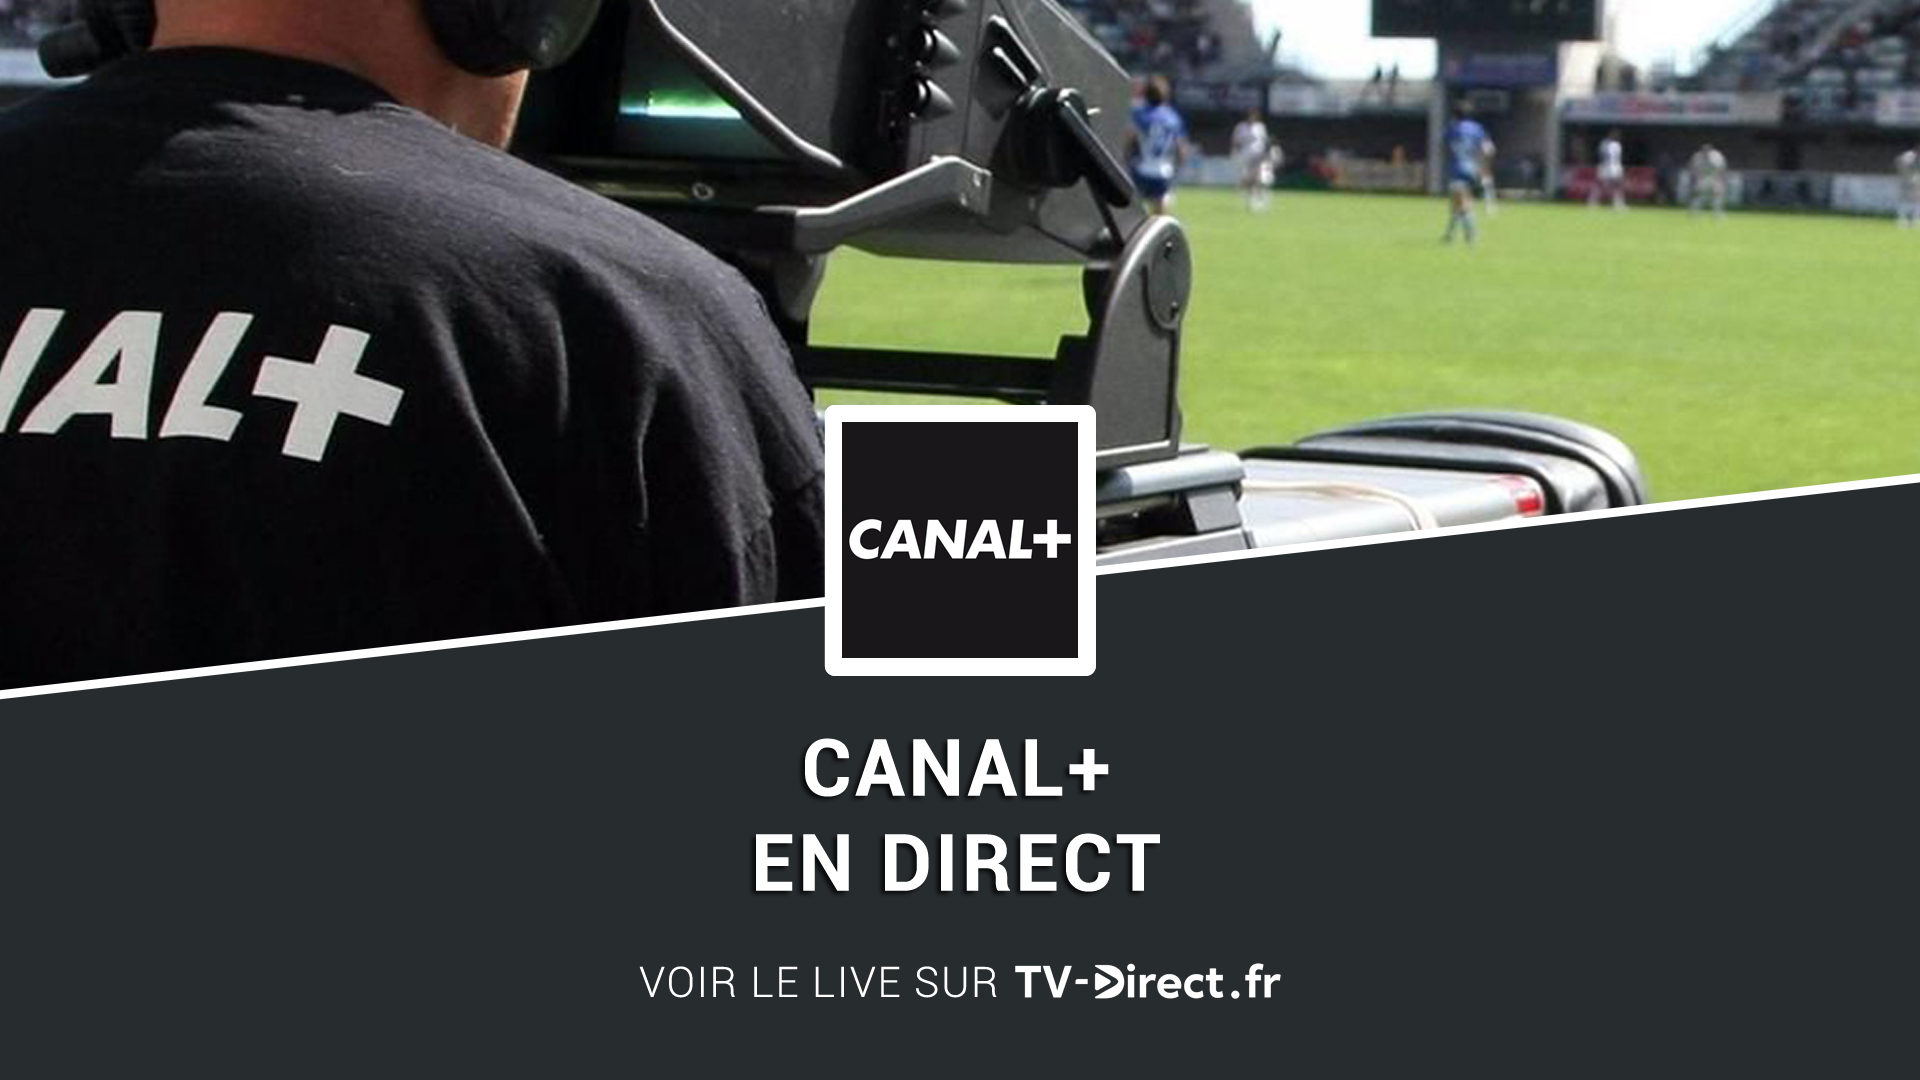 canal direct regarder canal plus live sur internet. Black Bedroom Furniture Sets. Home Design Ideas